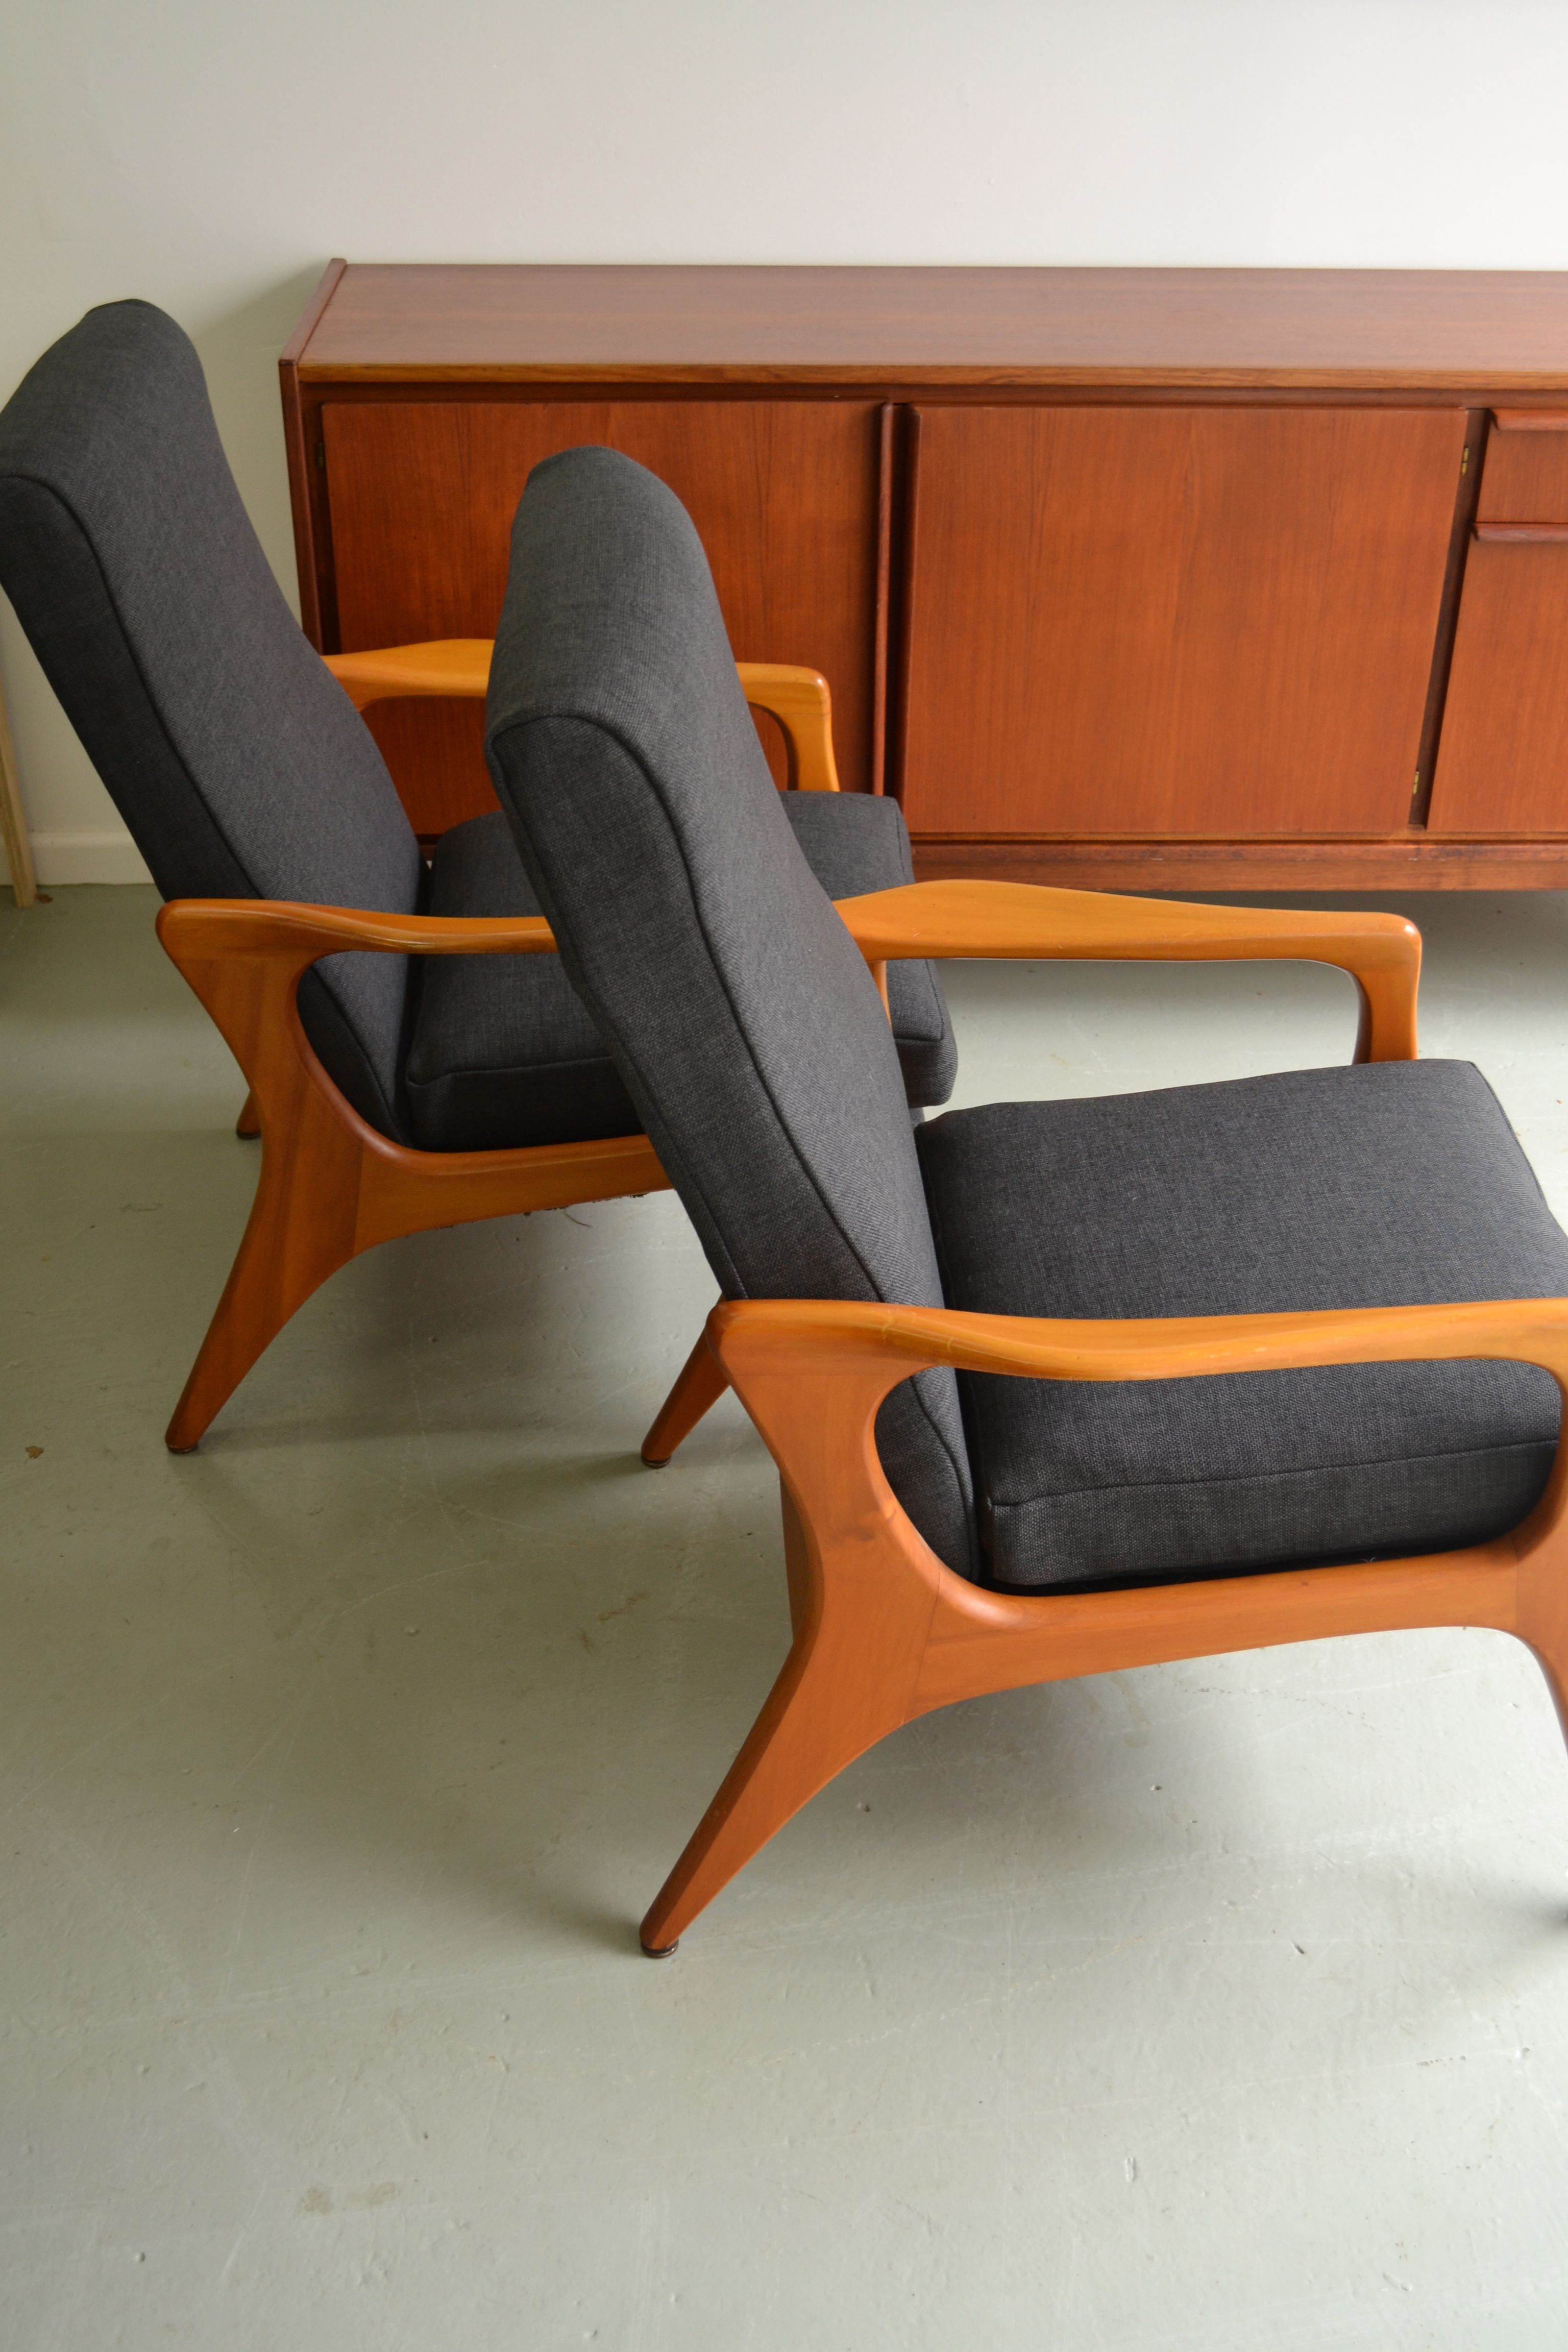 Fred Lowen Designed Fler Sc58 Armchairs Refurbished By Www  # Muebles Nacho Polo